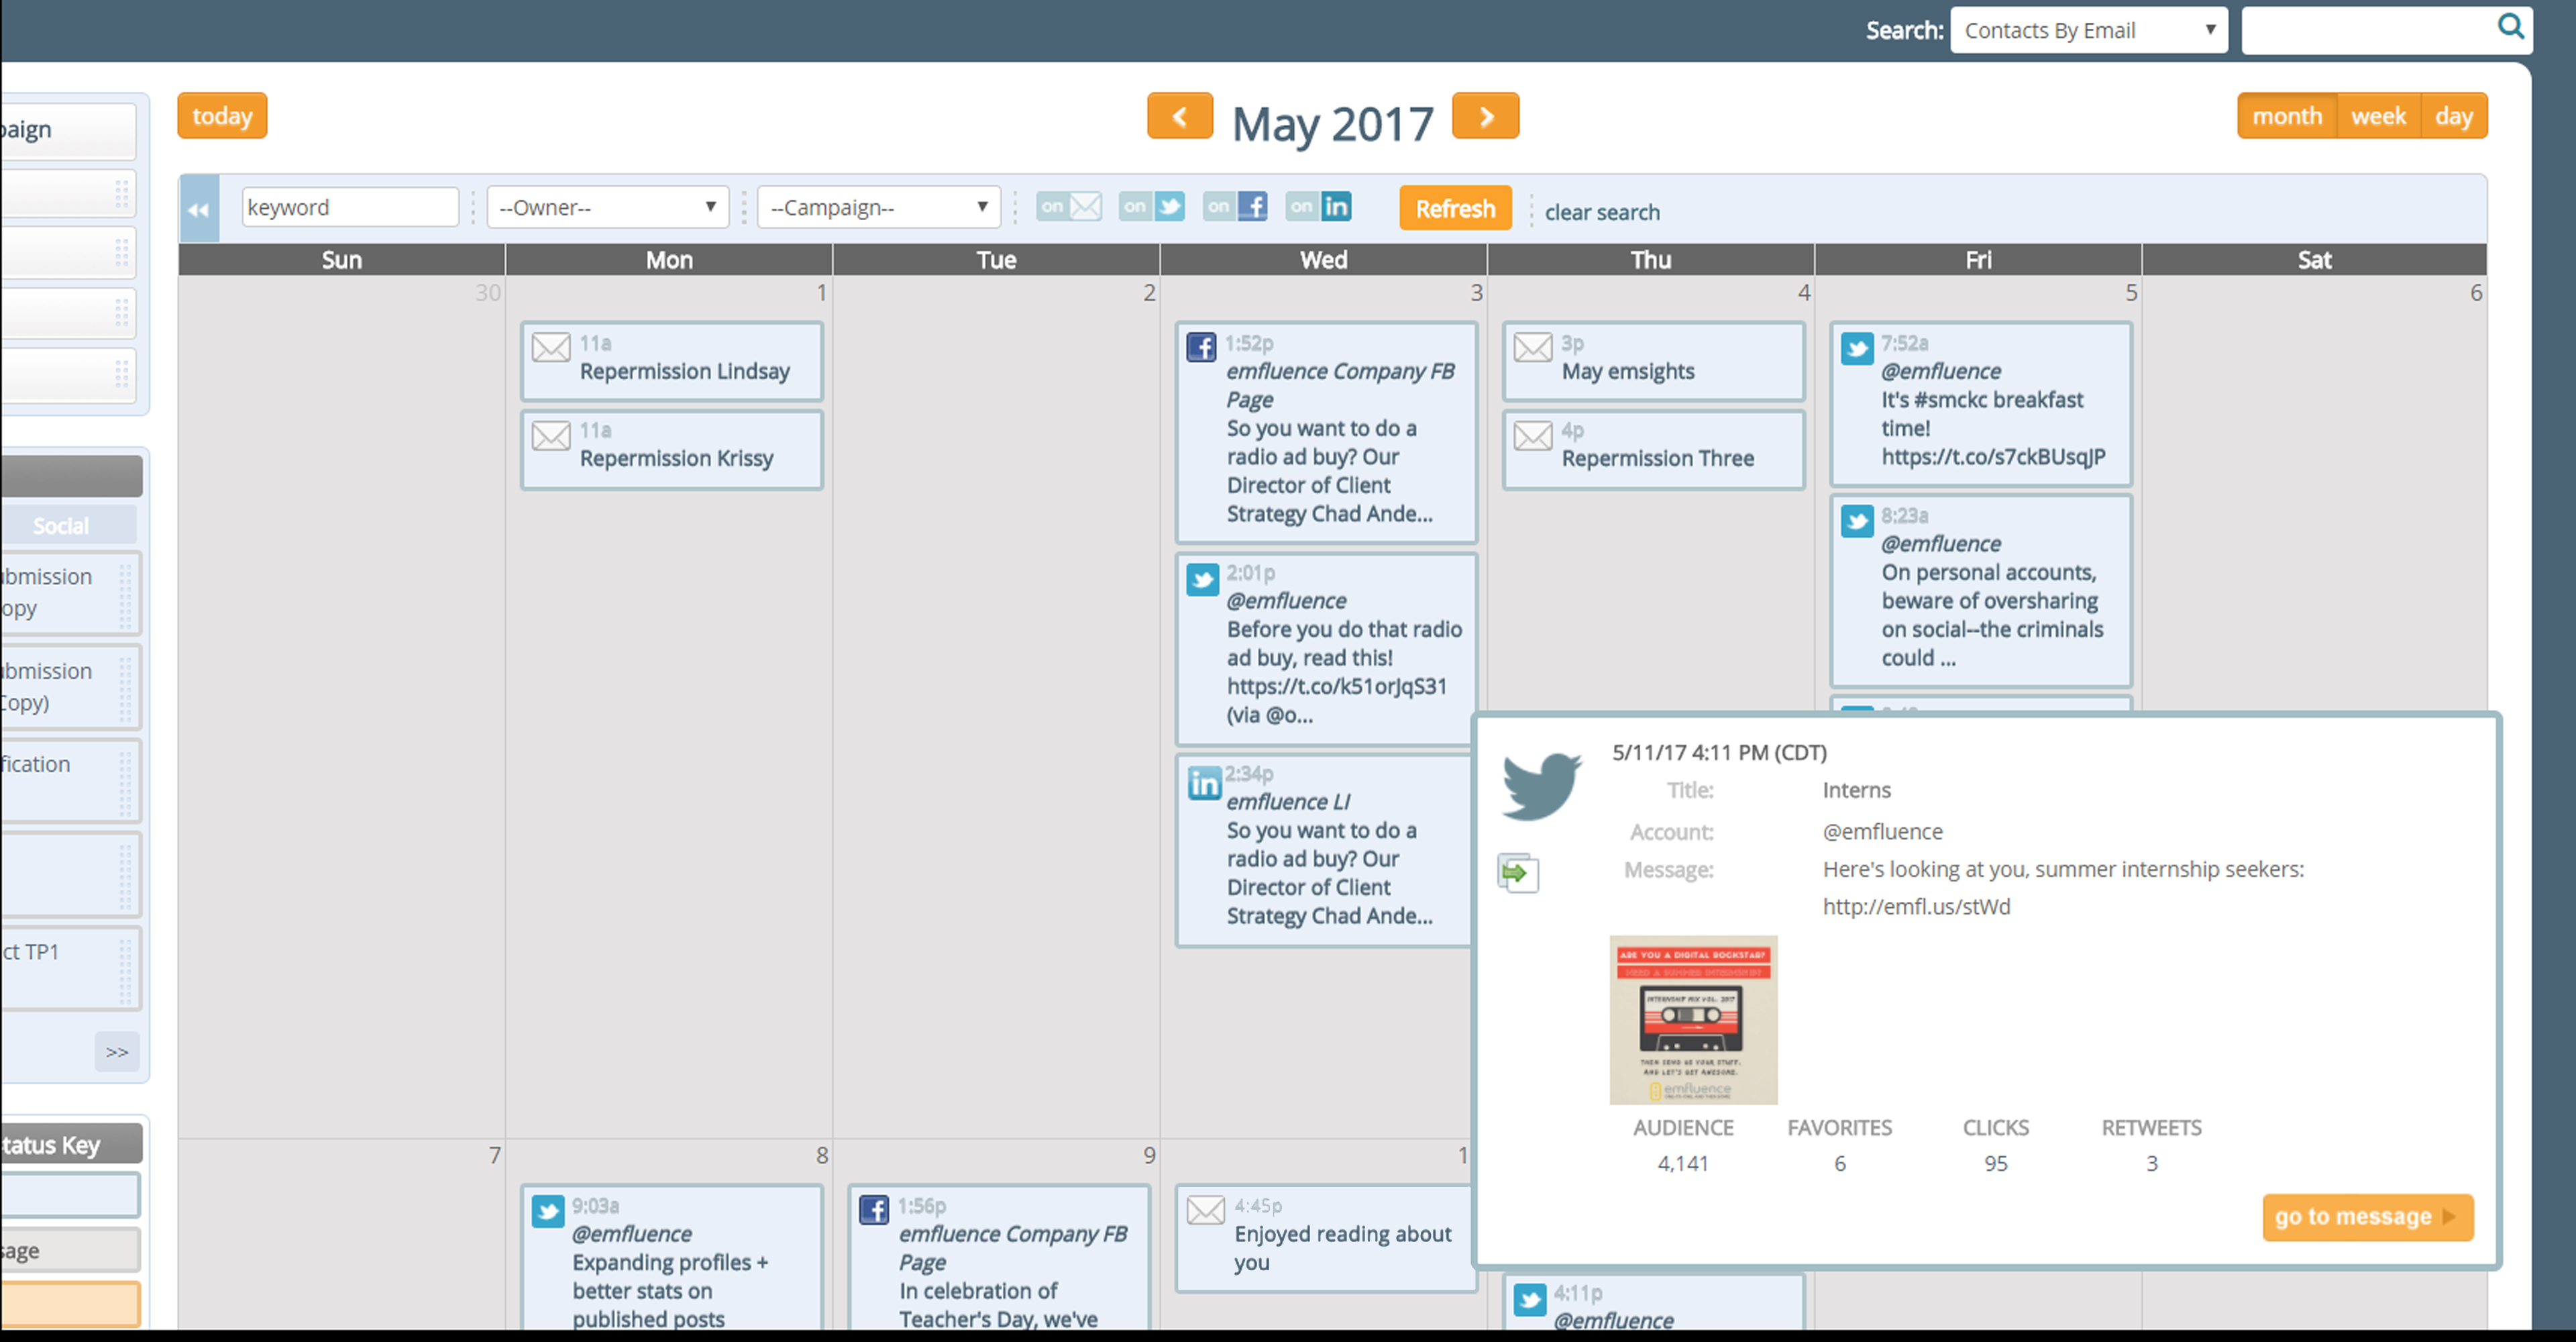 emfluence Marketing Platform Demo - Drag and Drop Marketing Calendar